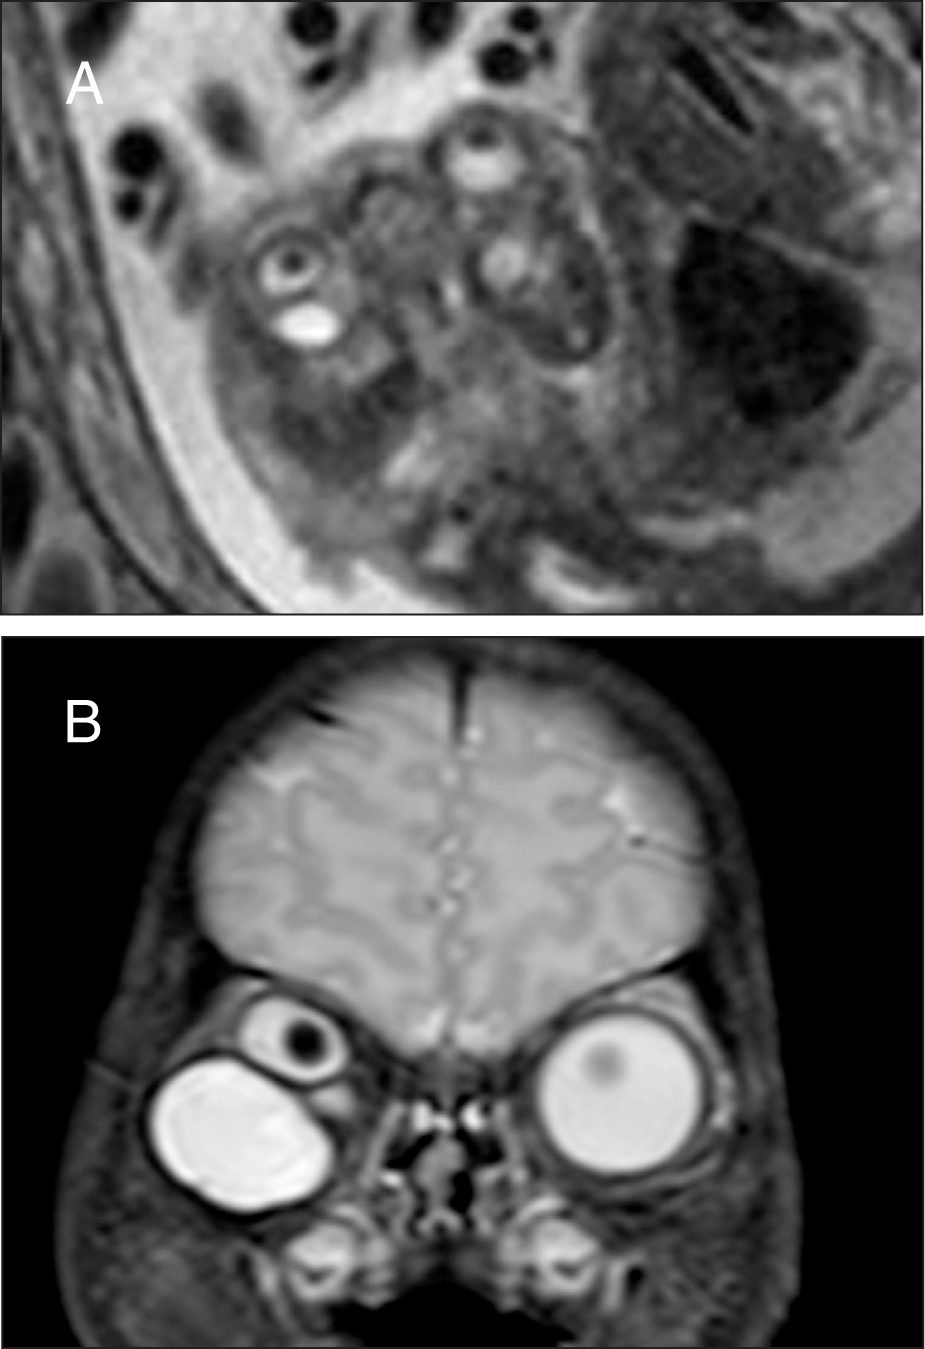 Prenatal magnetic resonance imaging showing microphthalmia of the right globe measuring 6 × 7 mm with orbital cyst and the normal left globe measuring 10 × 10 mm. (A) A definitive intraocular mass was not identified. (B) Postnatal magnetic resonance imaging confirmed the prenatal findings.